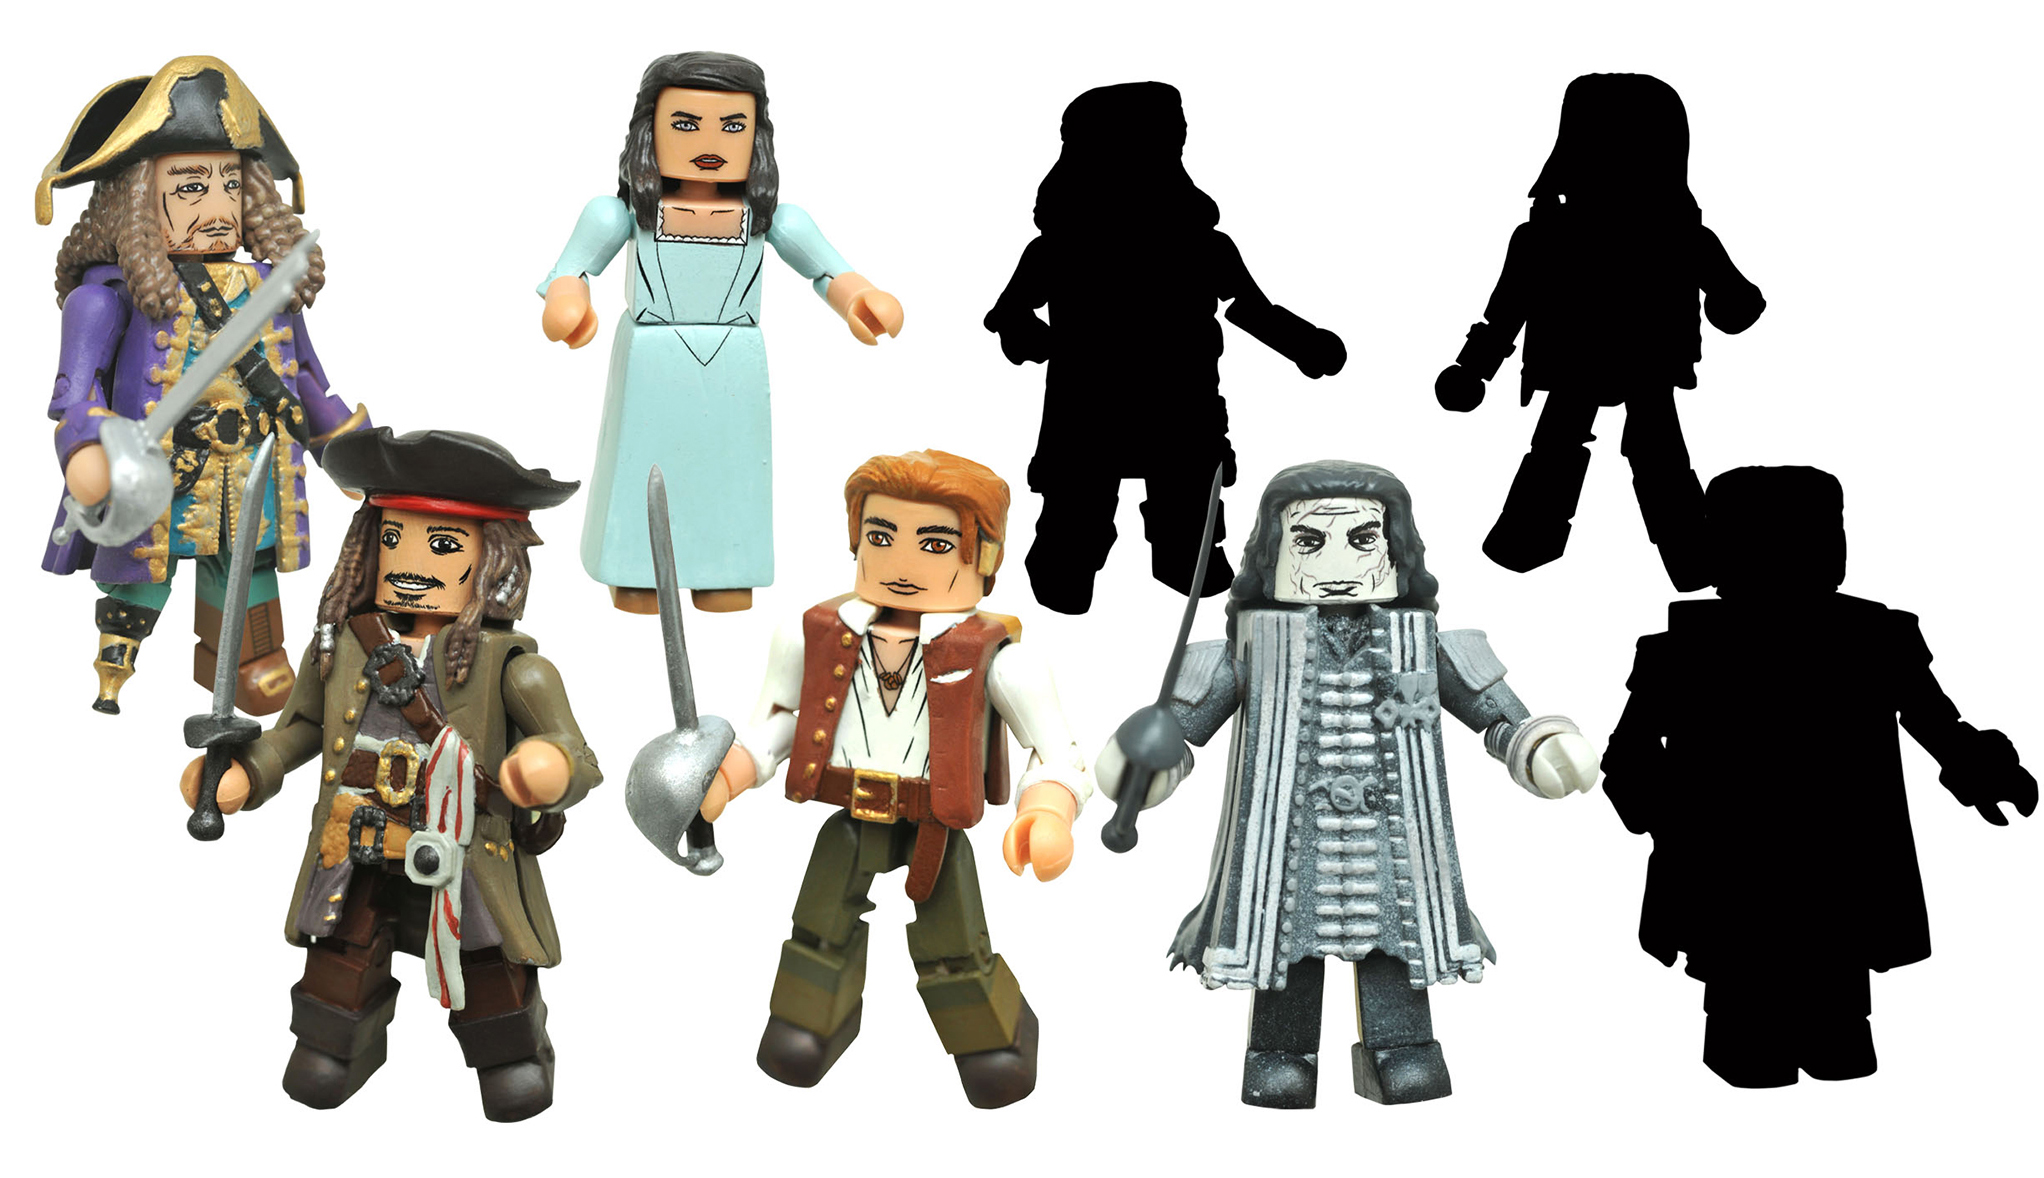 Pirates of the Caribbean: Dead Men Tell No Tales Minimates Full Custom Case of 12